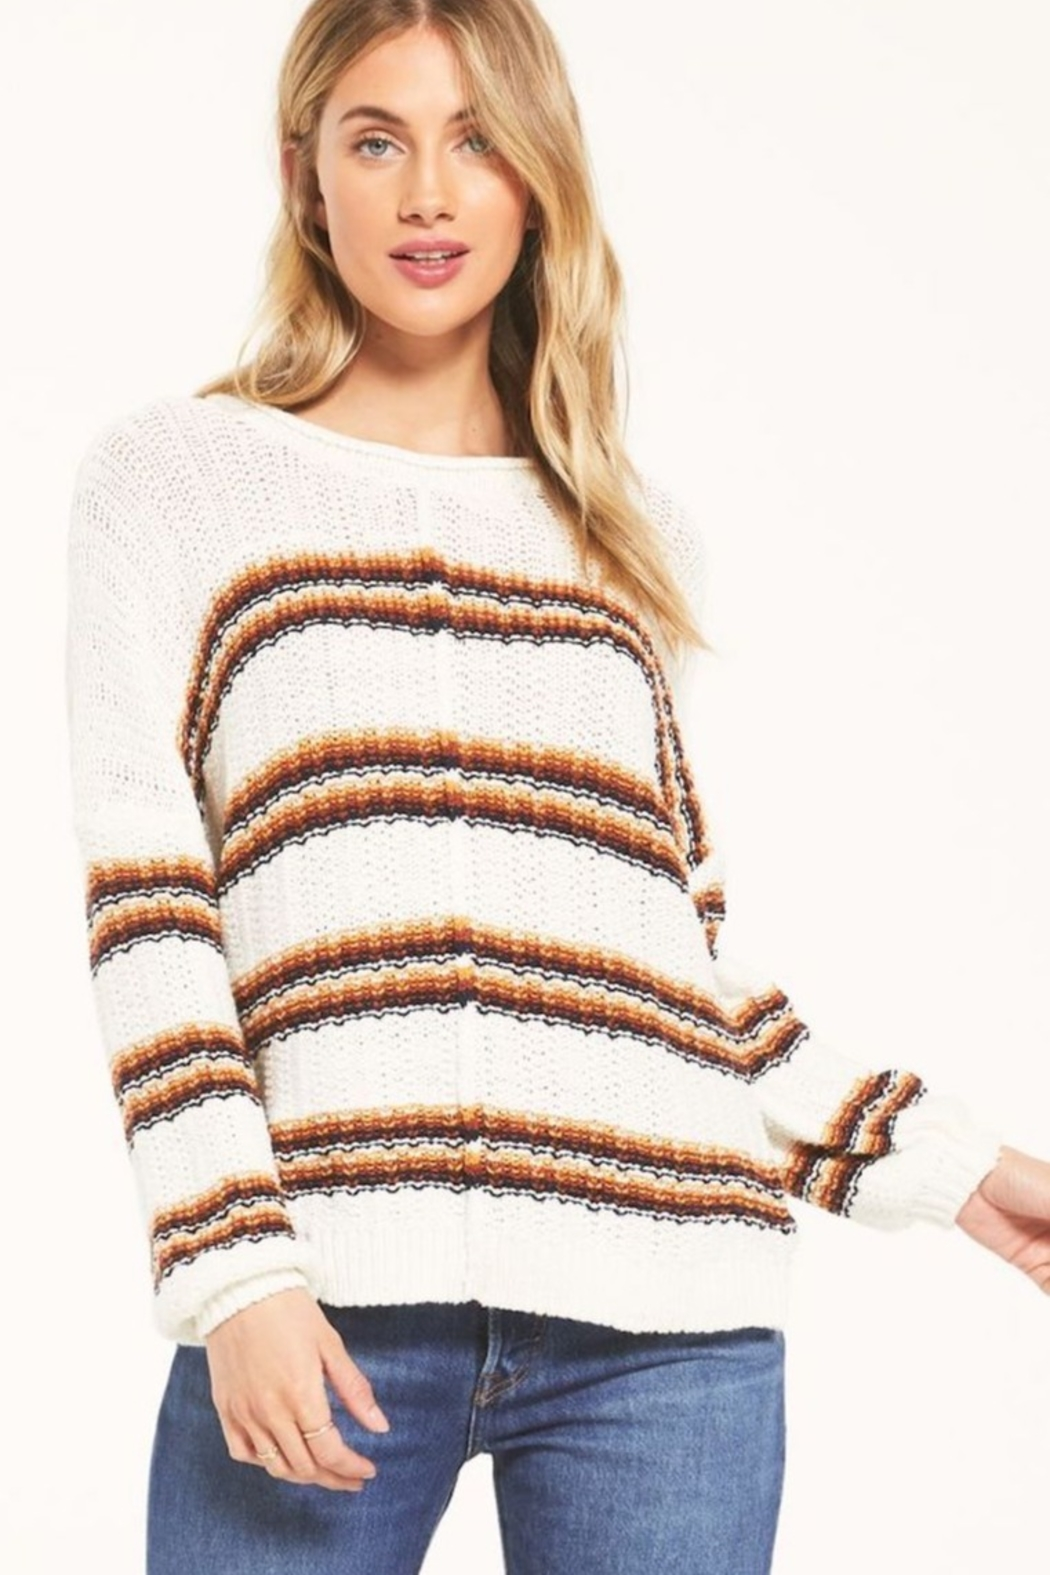 White Crow  Capitan Roll-Knit Sweater - Front Cropped Image